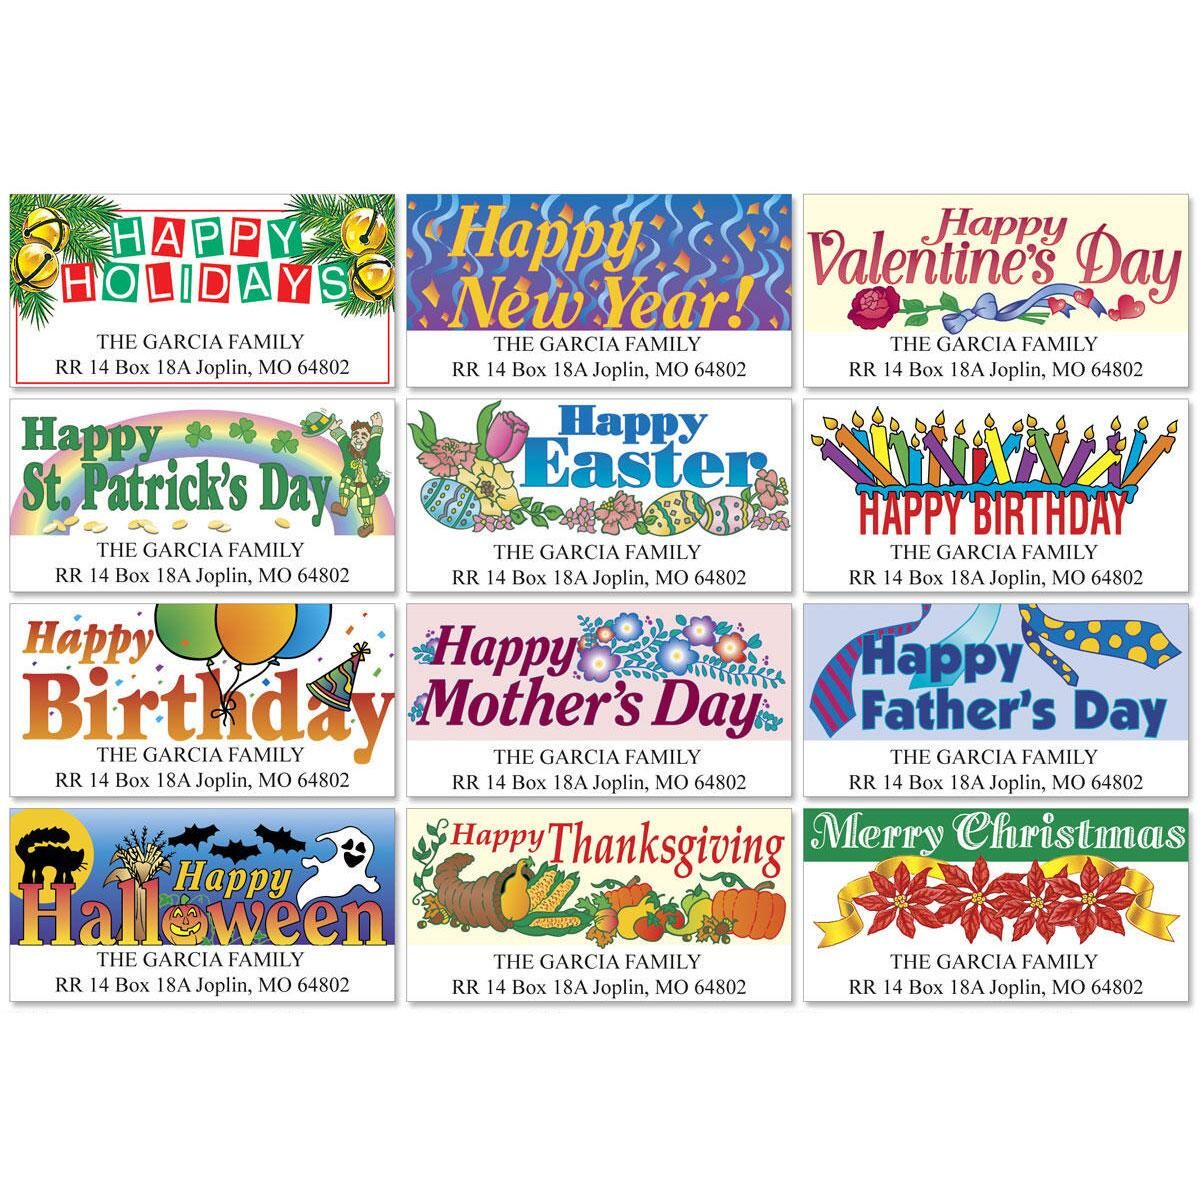 Year-Round Holidays Deluxe Return Address Labels  (12 Designs)